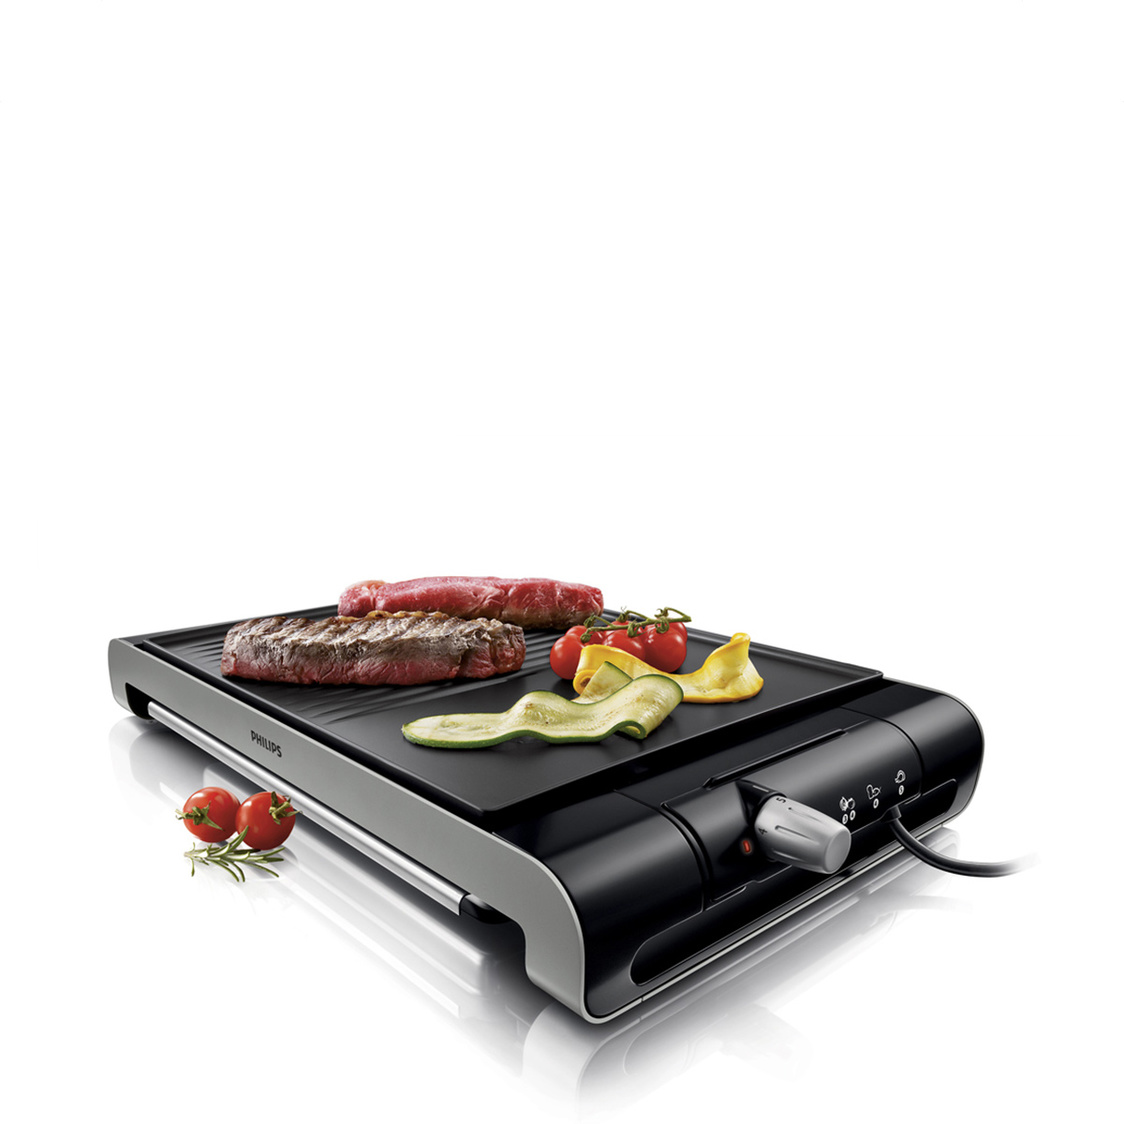 Table Grill HD441920